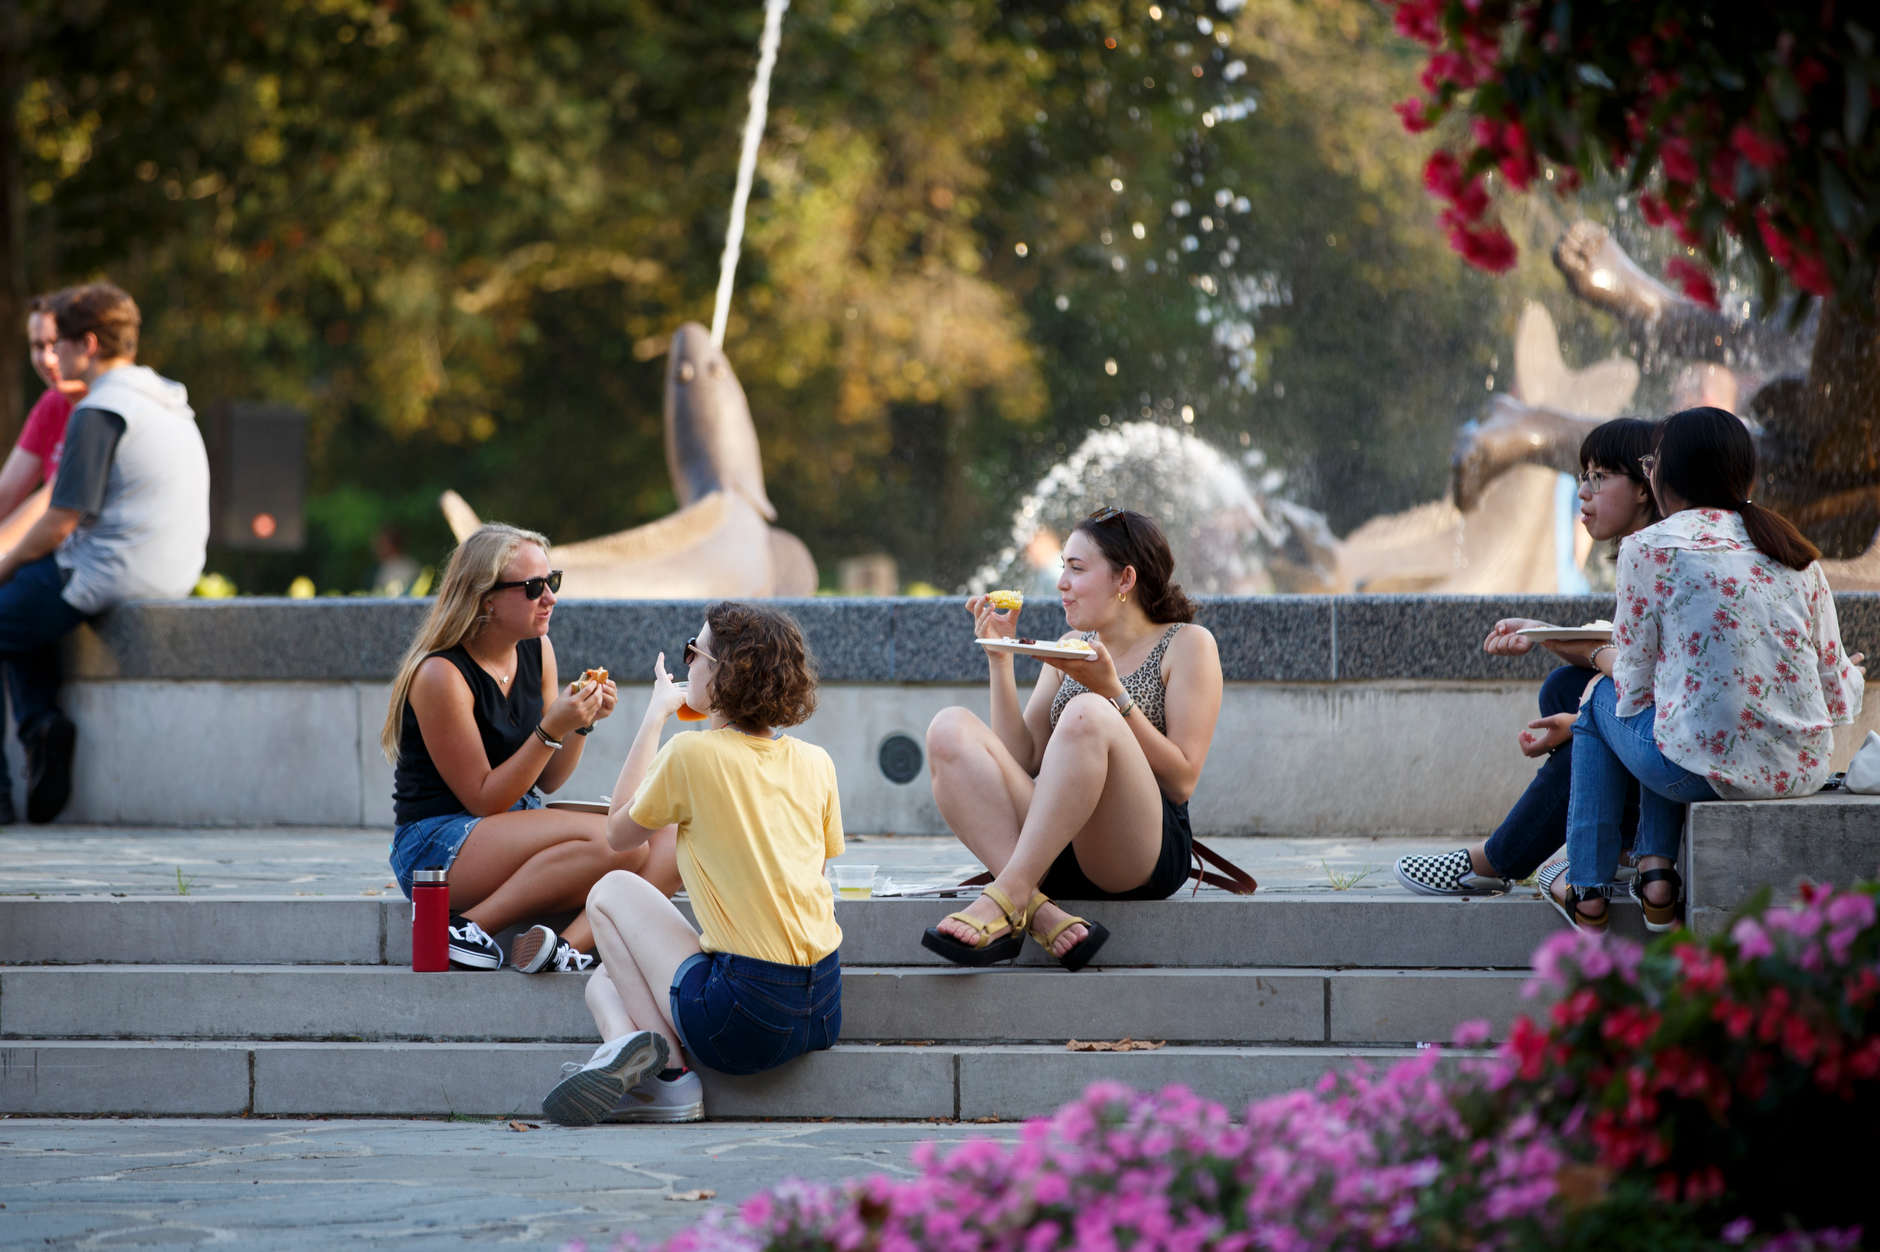 Students eat near Showalter Fountain during Bikes and Burgers at IU Bloomington on Monday, Aug. 19, 2019. (James Brosher/Indiana University)